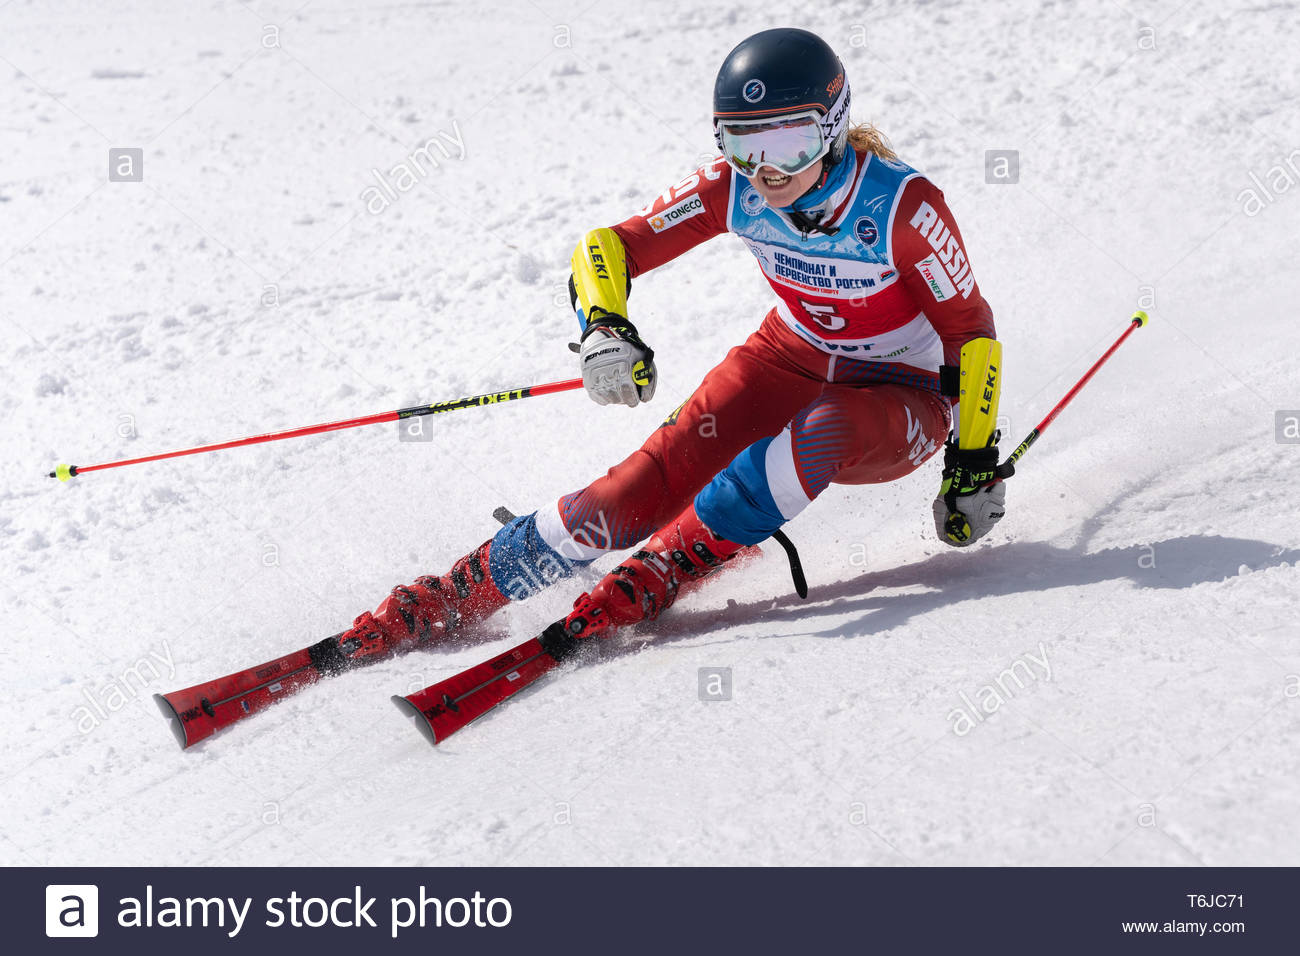 KAMCHATKA PENINSULA, RUSSIAN FEDERATION - APRIL 1, 2019: Russian Women's Alpine Skiing Championship, giant slalom. Mountain skier Tkachenko Ekaterina  - Stock Image